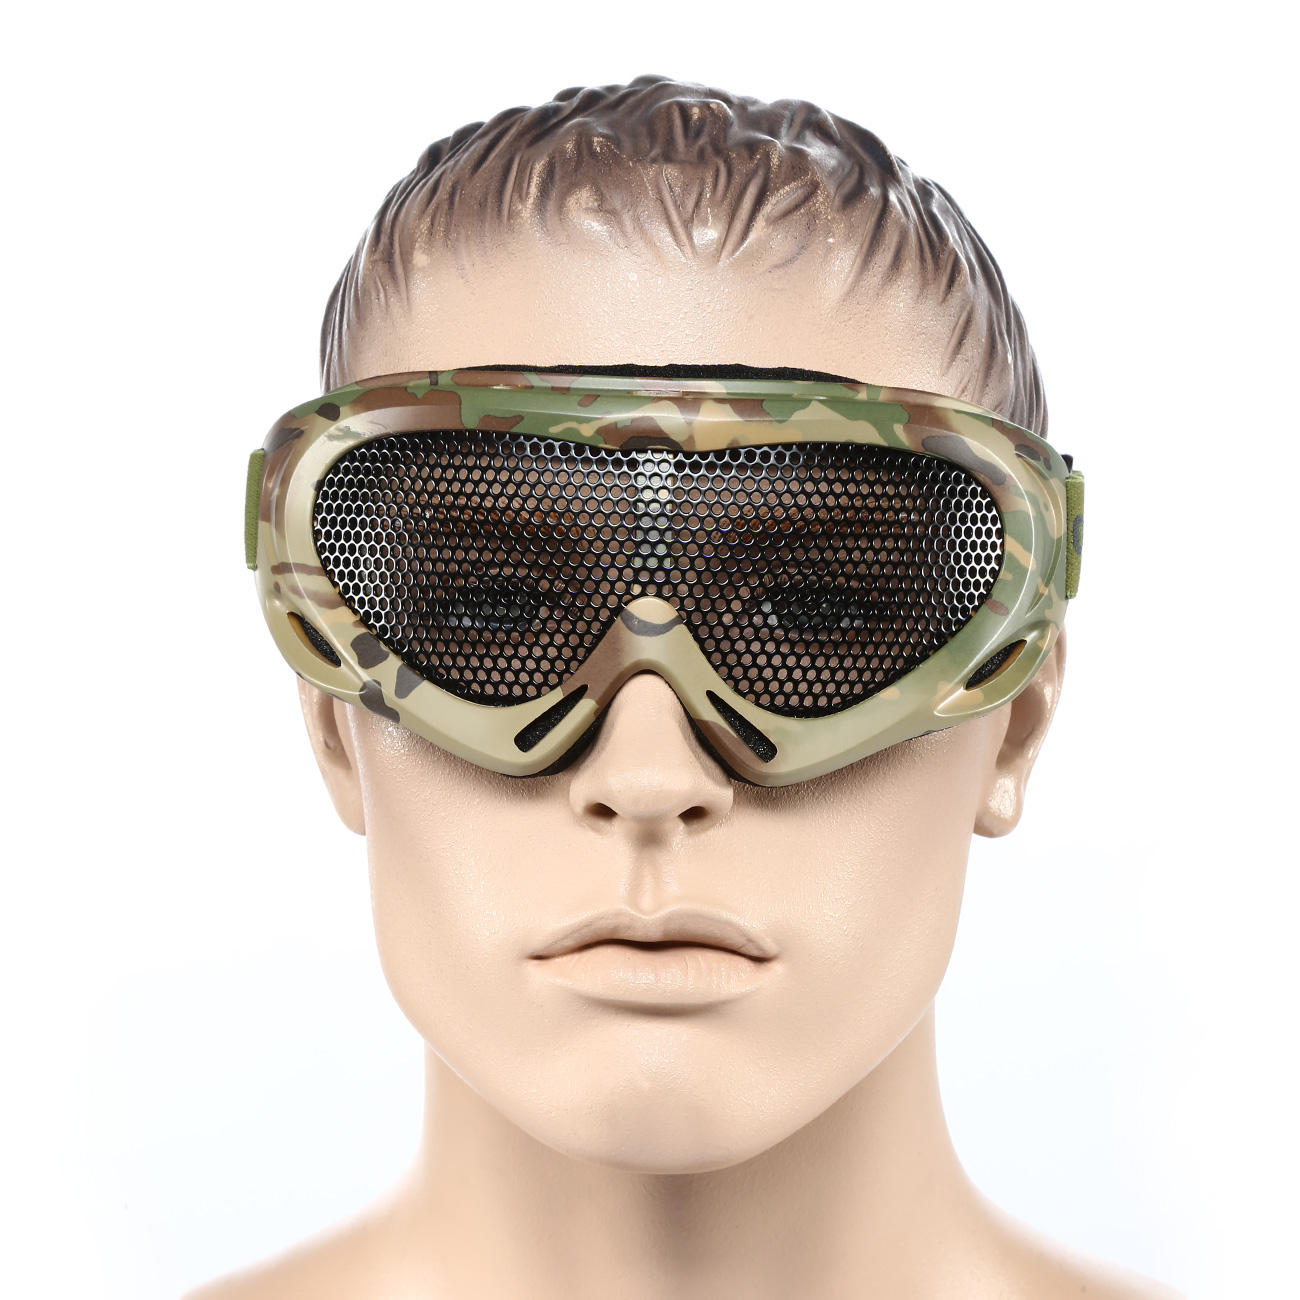 Nuprol Brille Pro Mesh Eye Protection Airsoft Gitterbrille camo 4